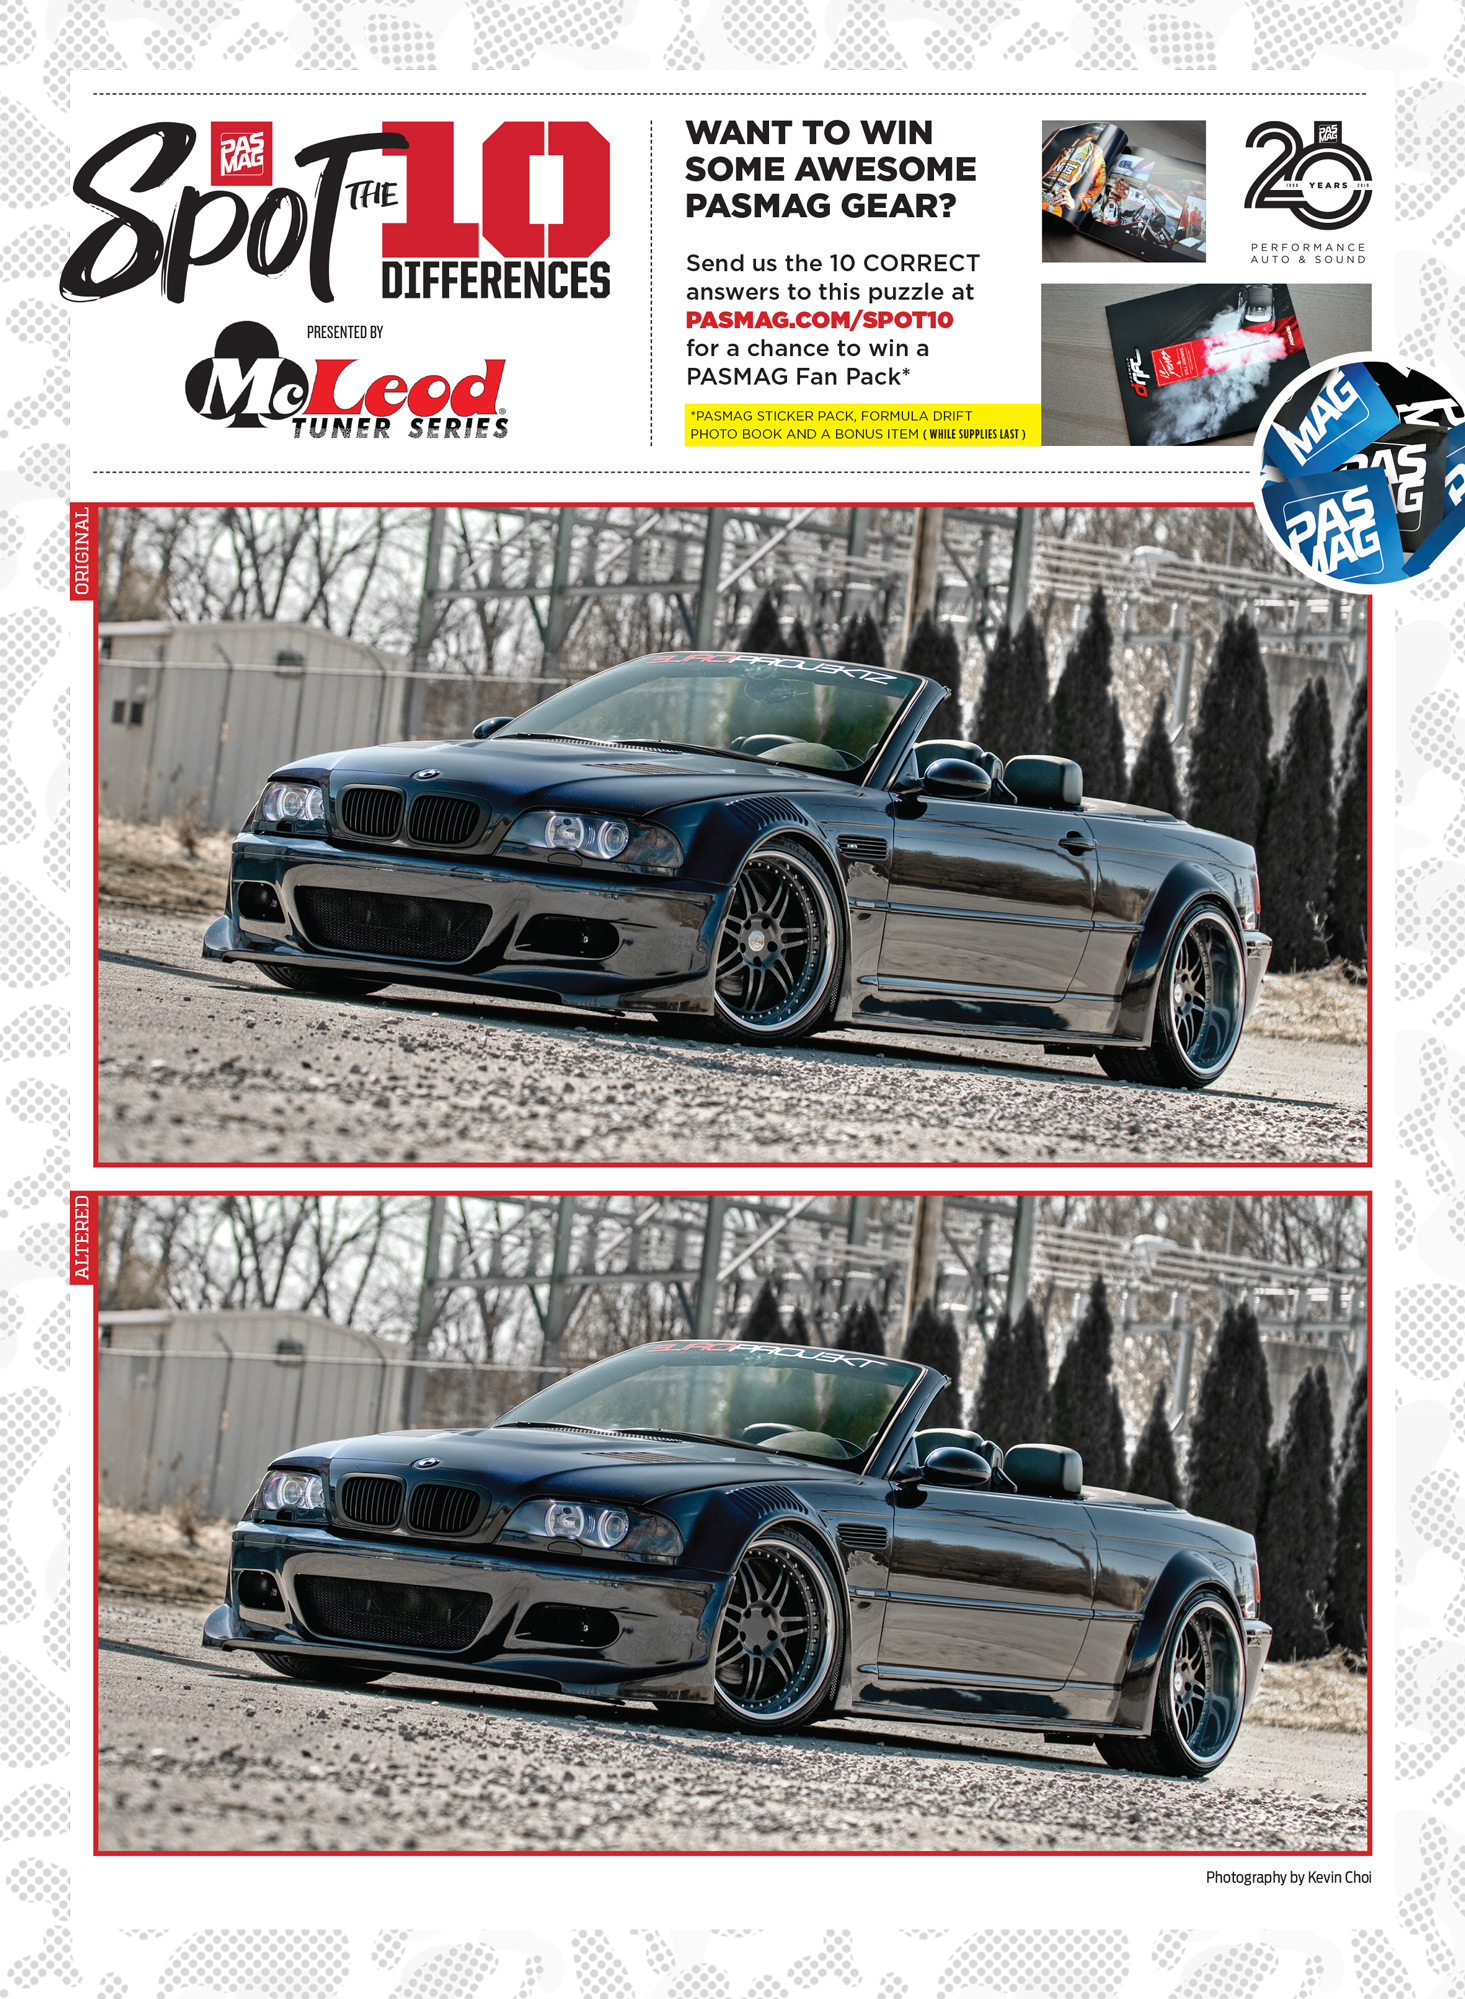 PASMAG Spot the Differences June 16 2020 Coun Phan 2002 BMW M3 Cabriolet pasmag